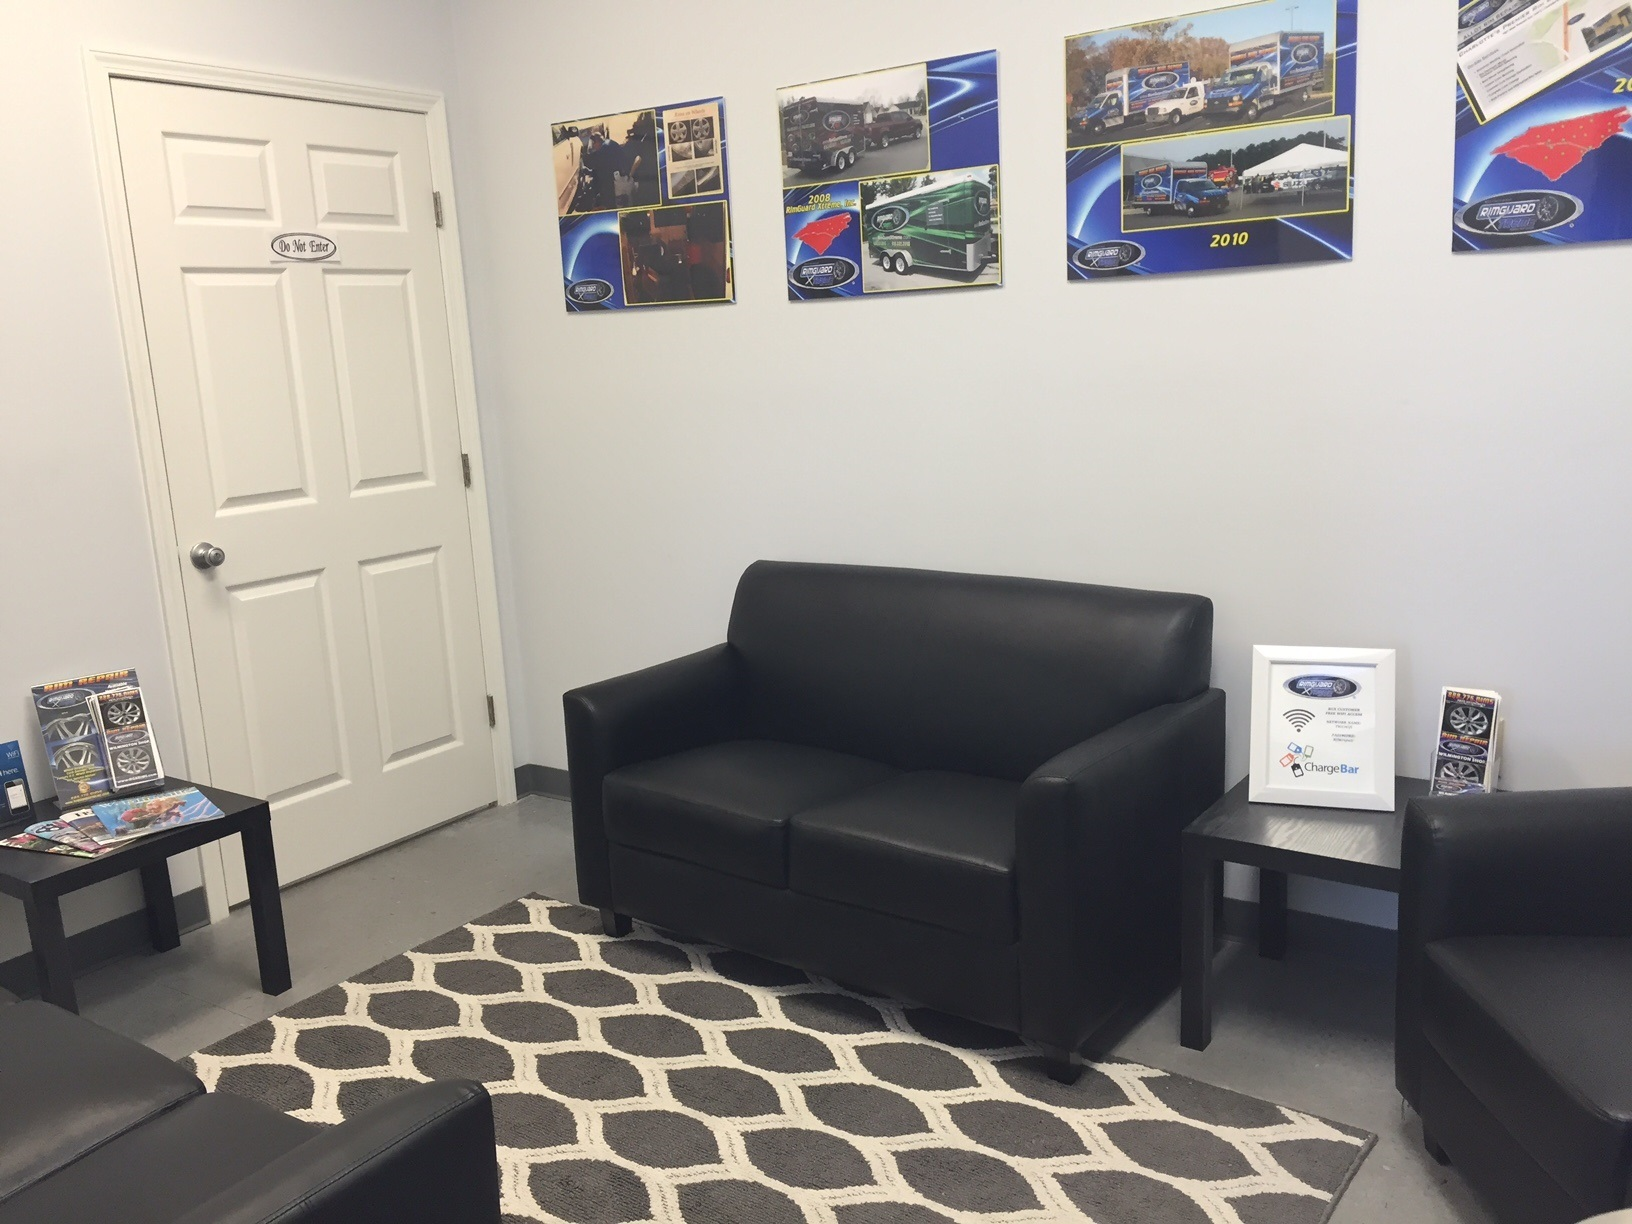 RGX Wilmington Rim Repair Waiting Room